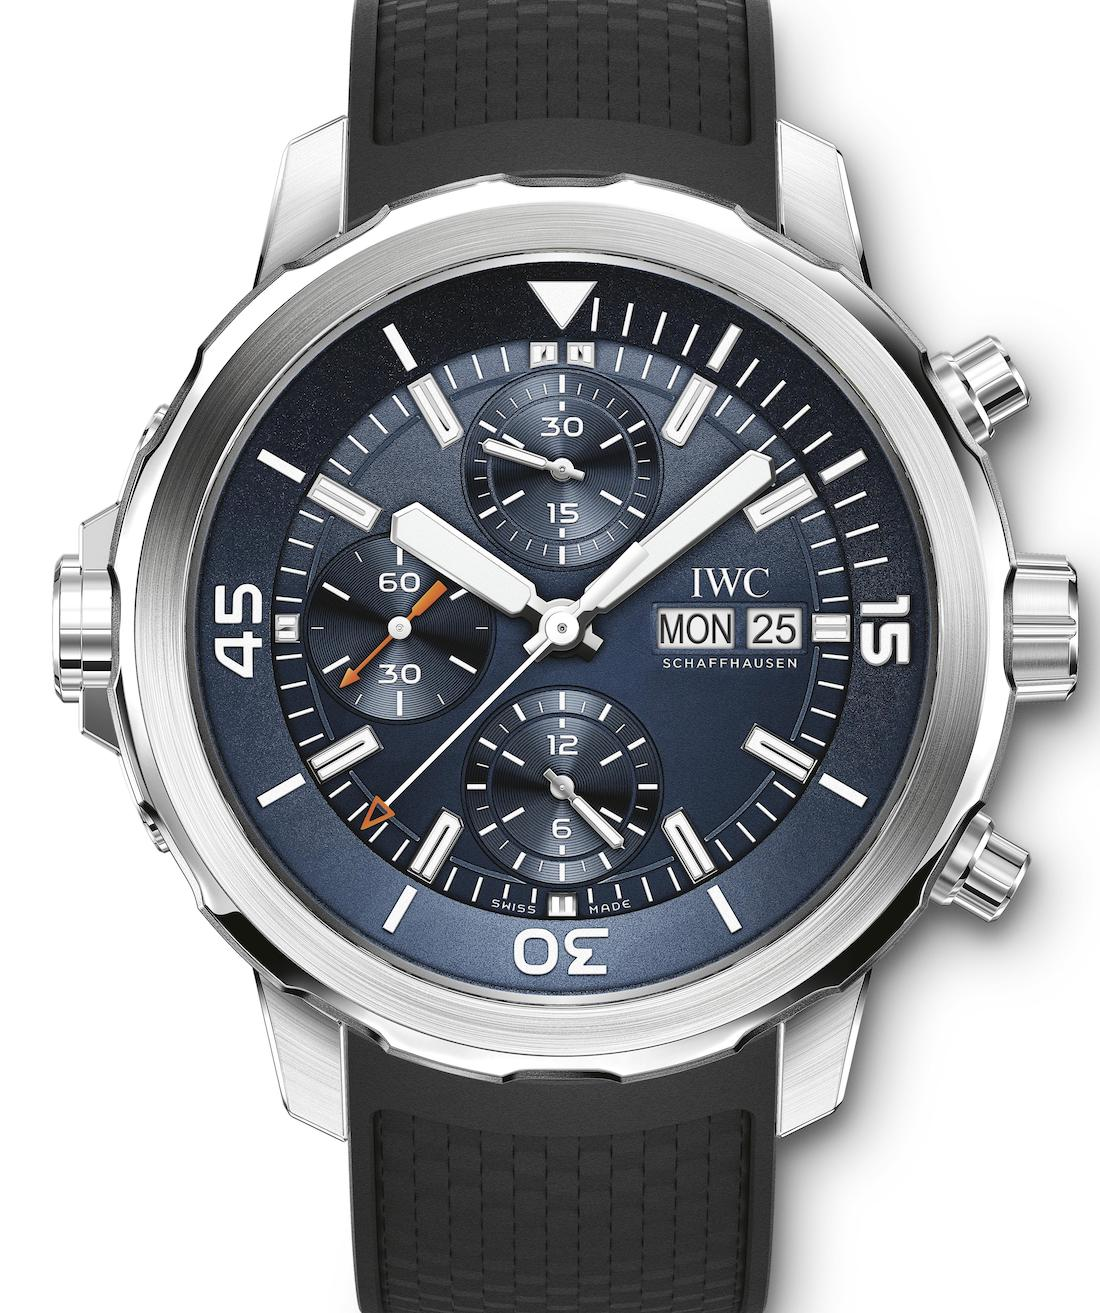 IW376805 Aquatimer Chronograph Edition Expedition Jaques Yves Cousteau.jpg